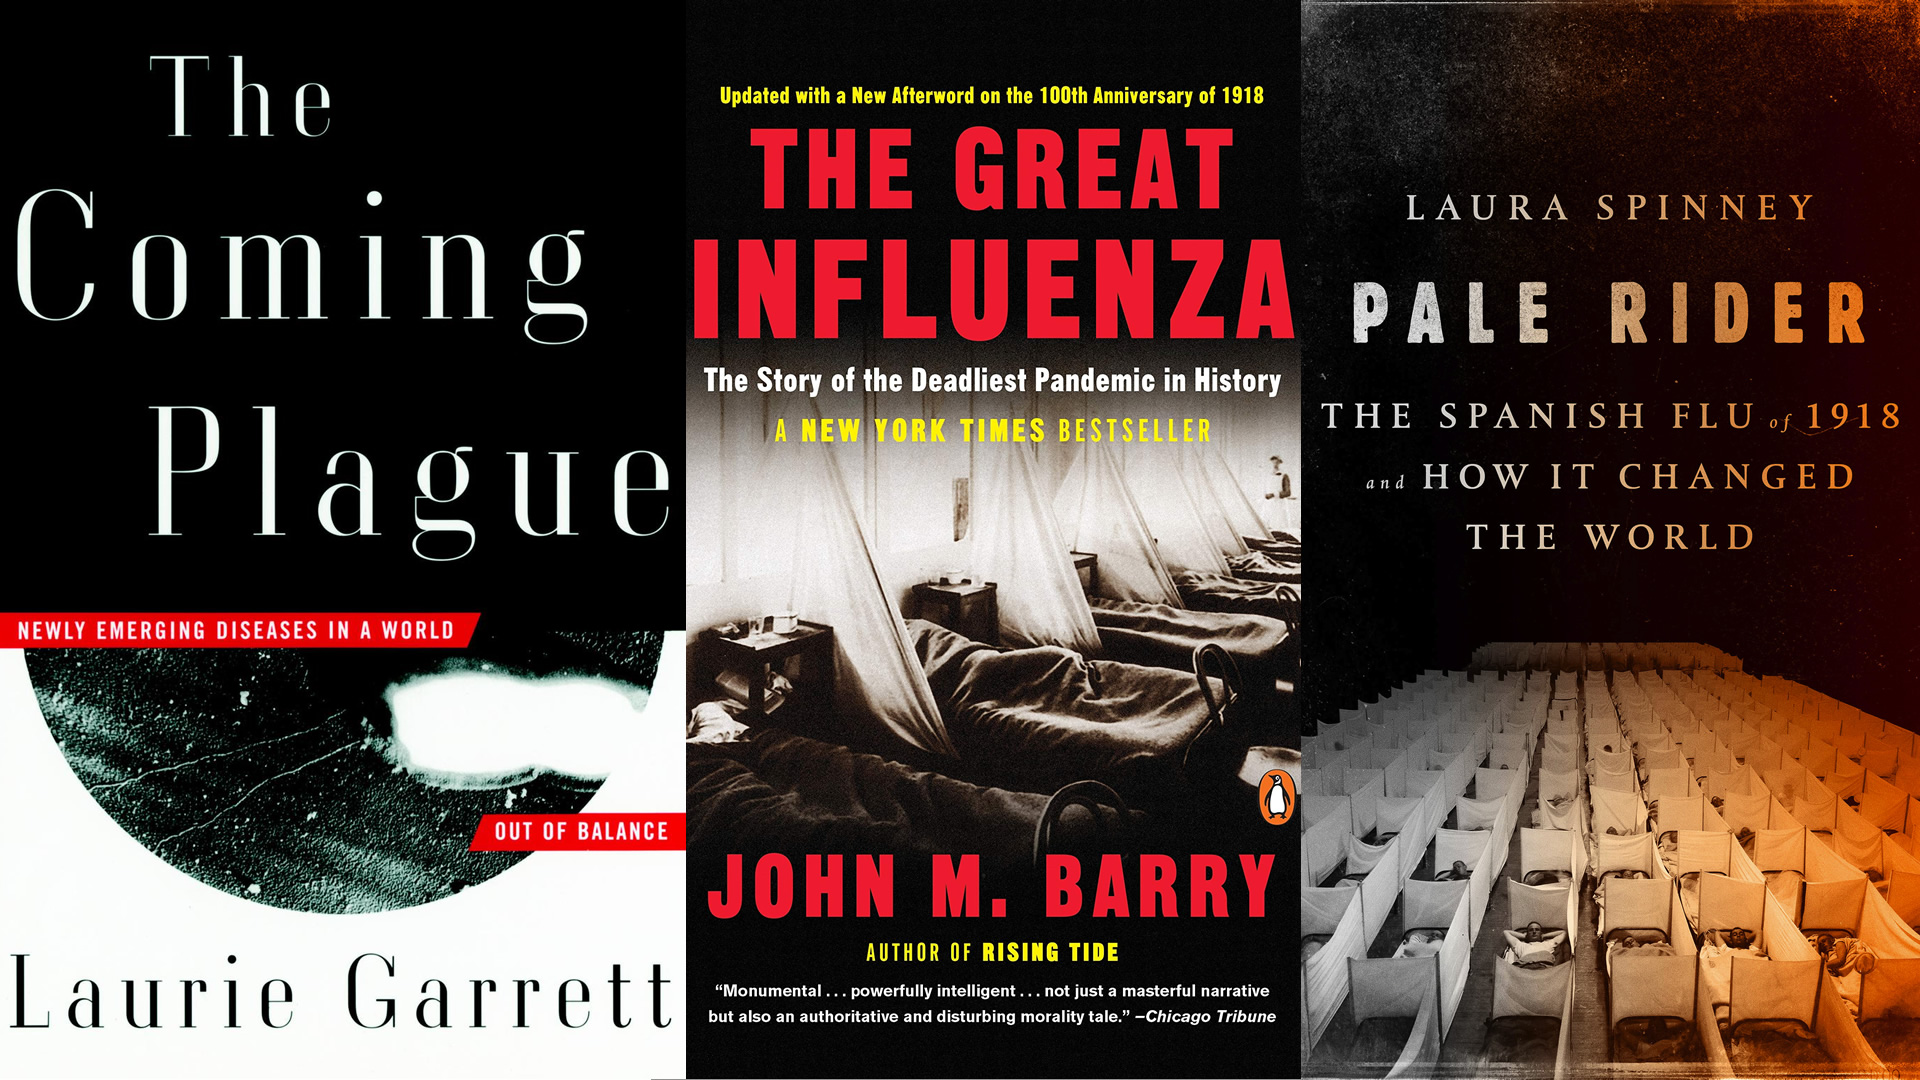 Pandemic-related books